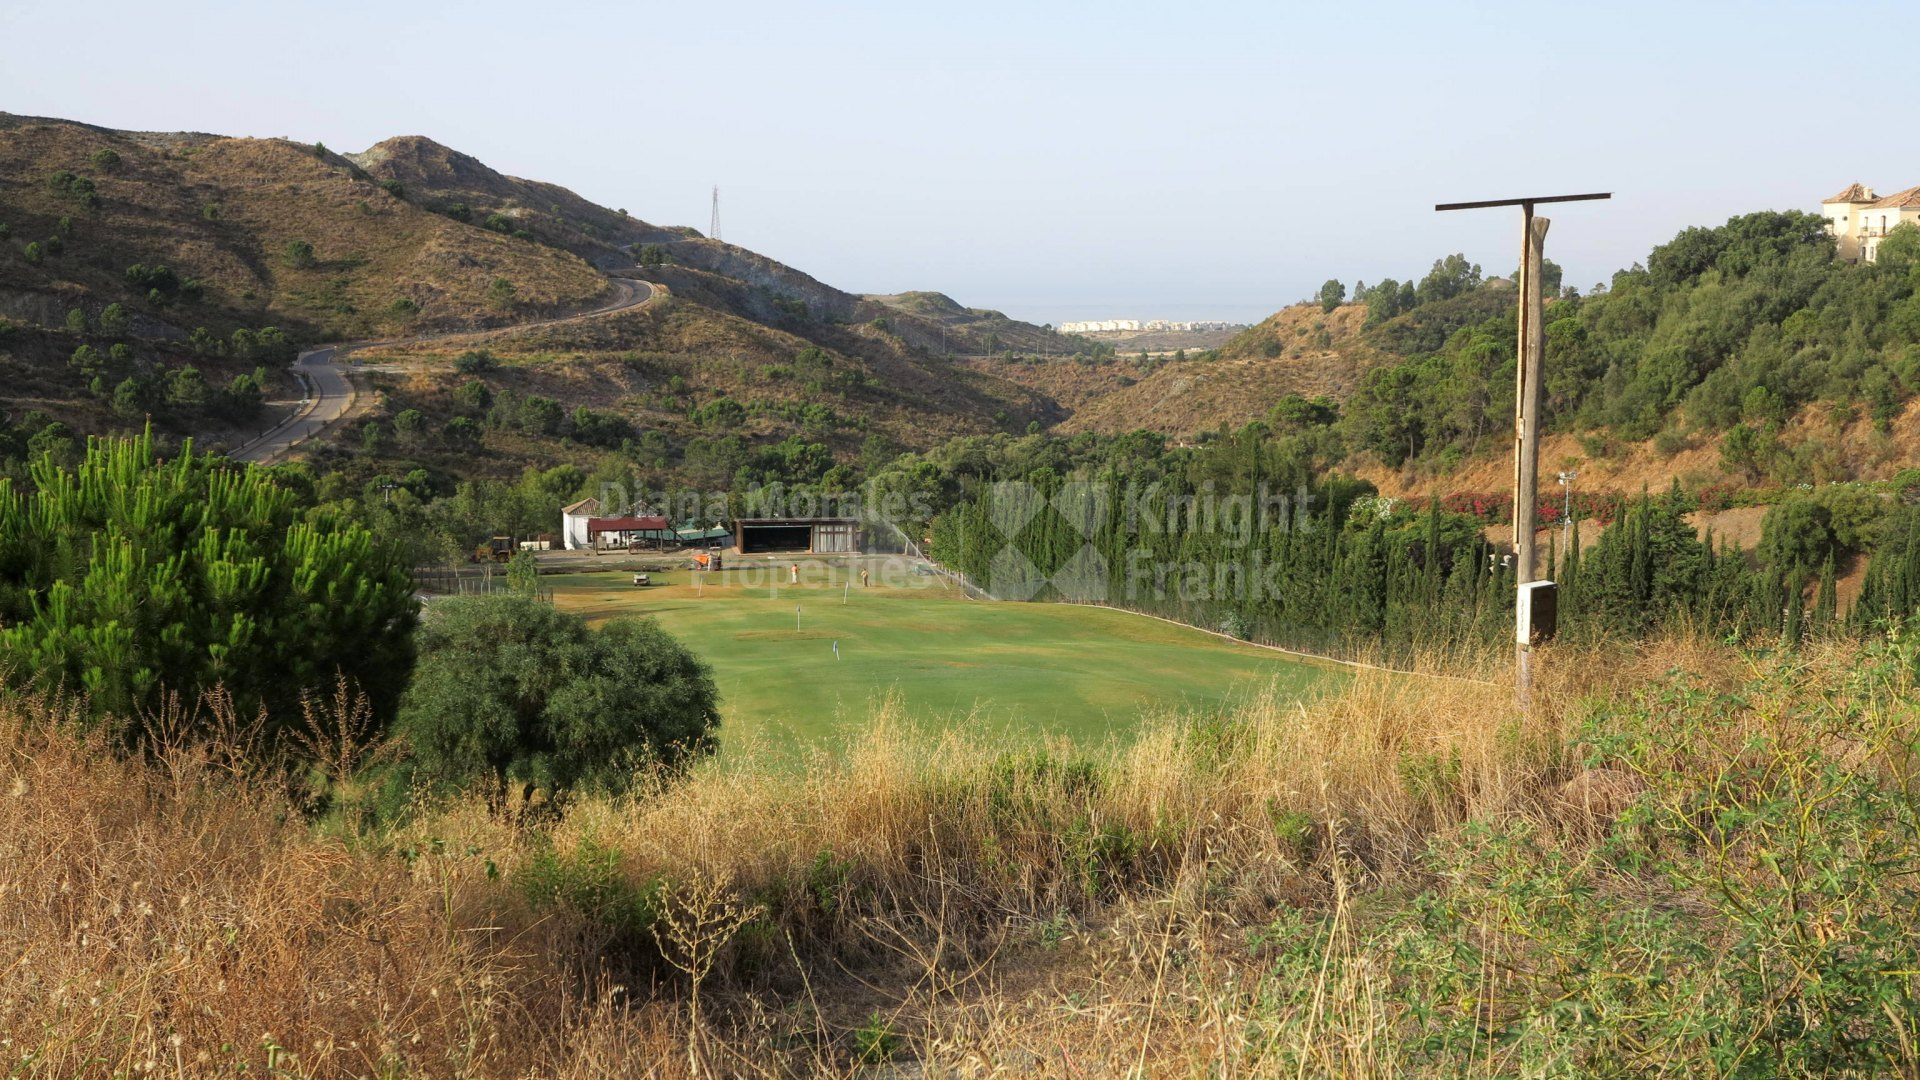 Marbella Club Golf Resort, Plot by the golf course